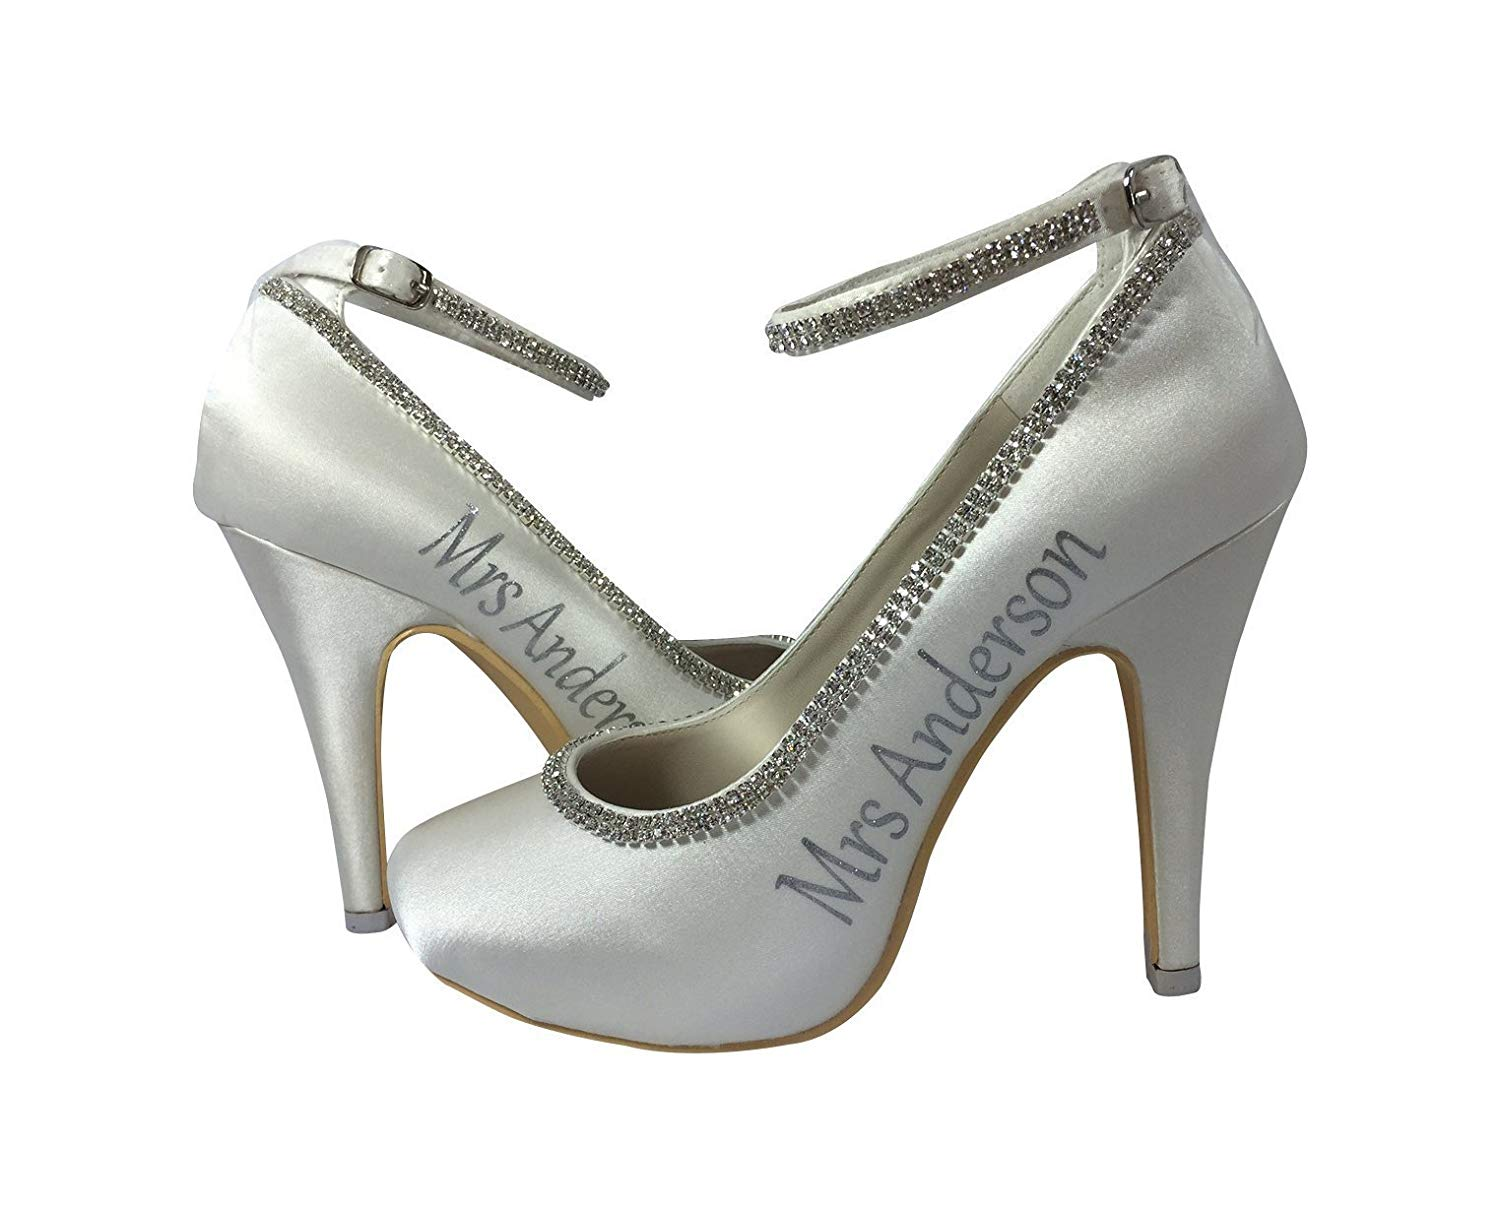 edea4111eed8 Get Quotations · Silver Ivory Strap Rhinestone Diamonte Customized 4 inch Bridal  Heels Wedding Mrs Last Name